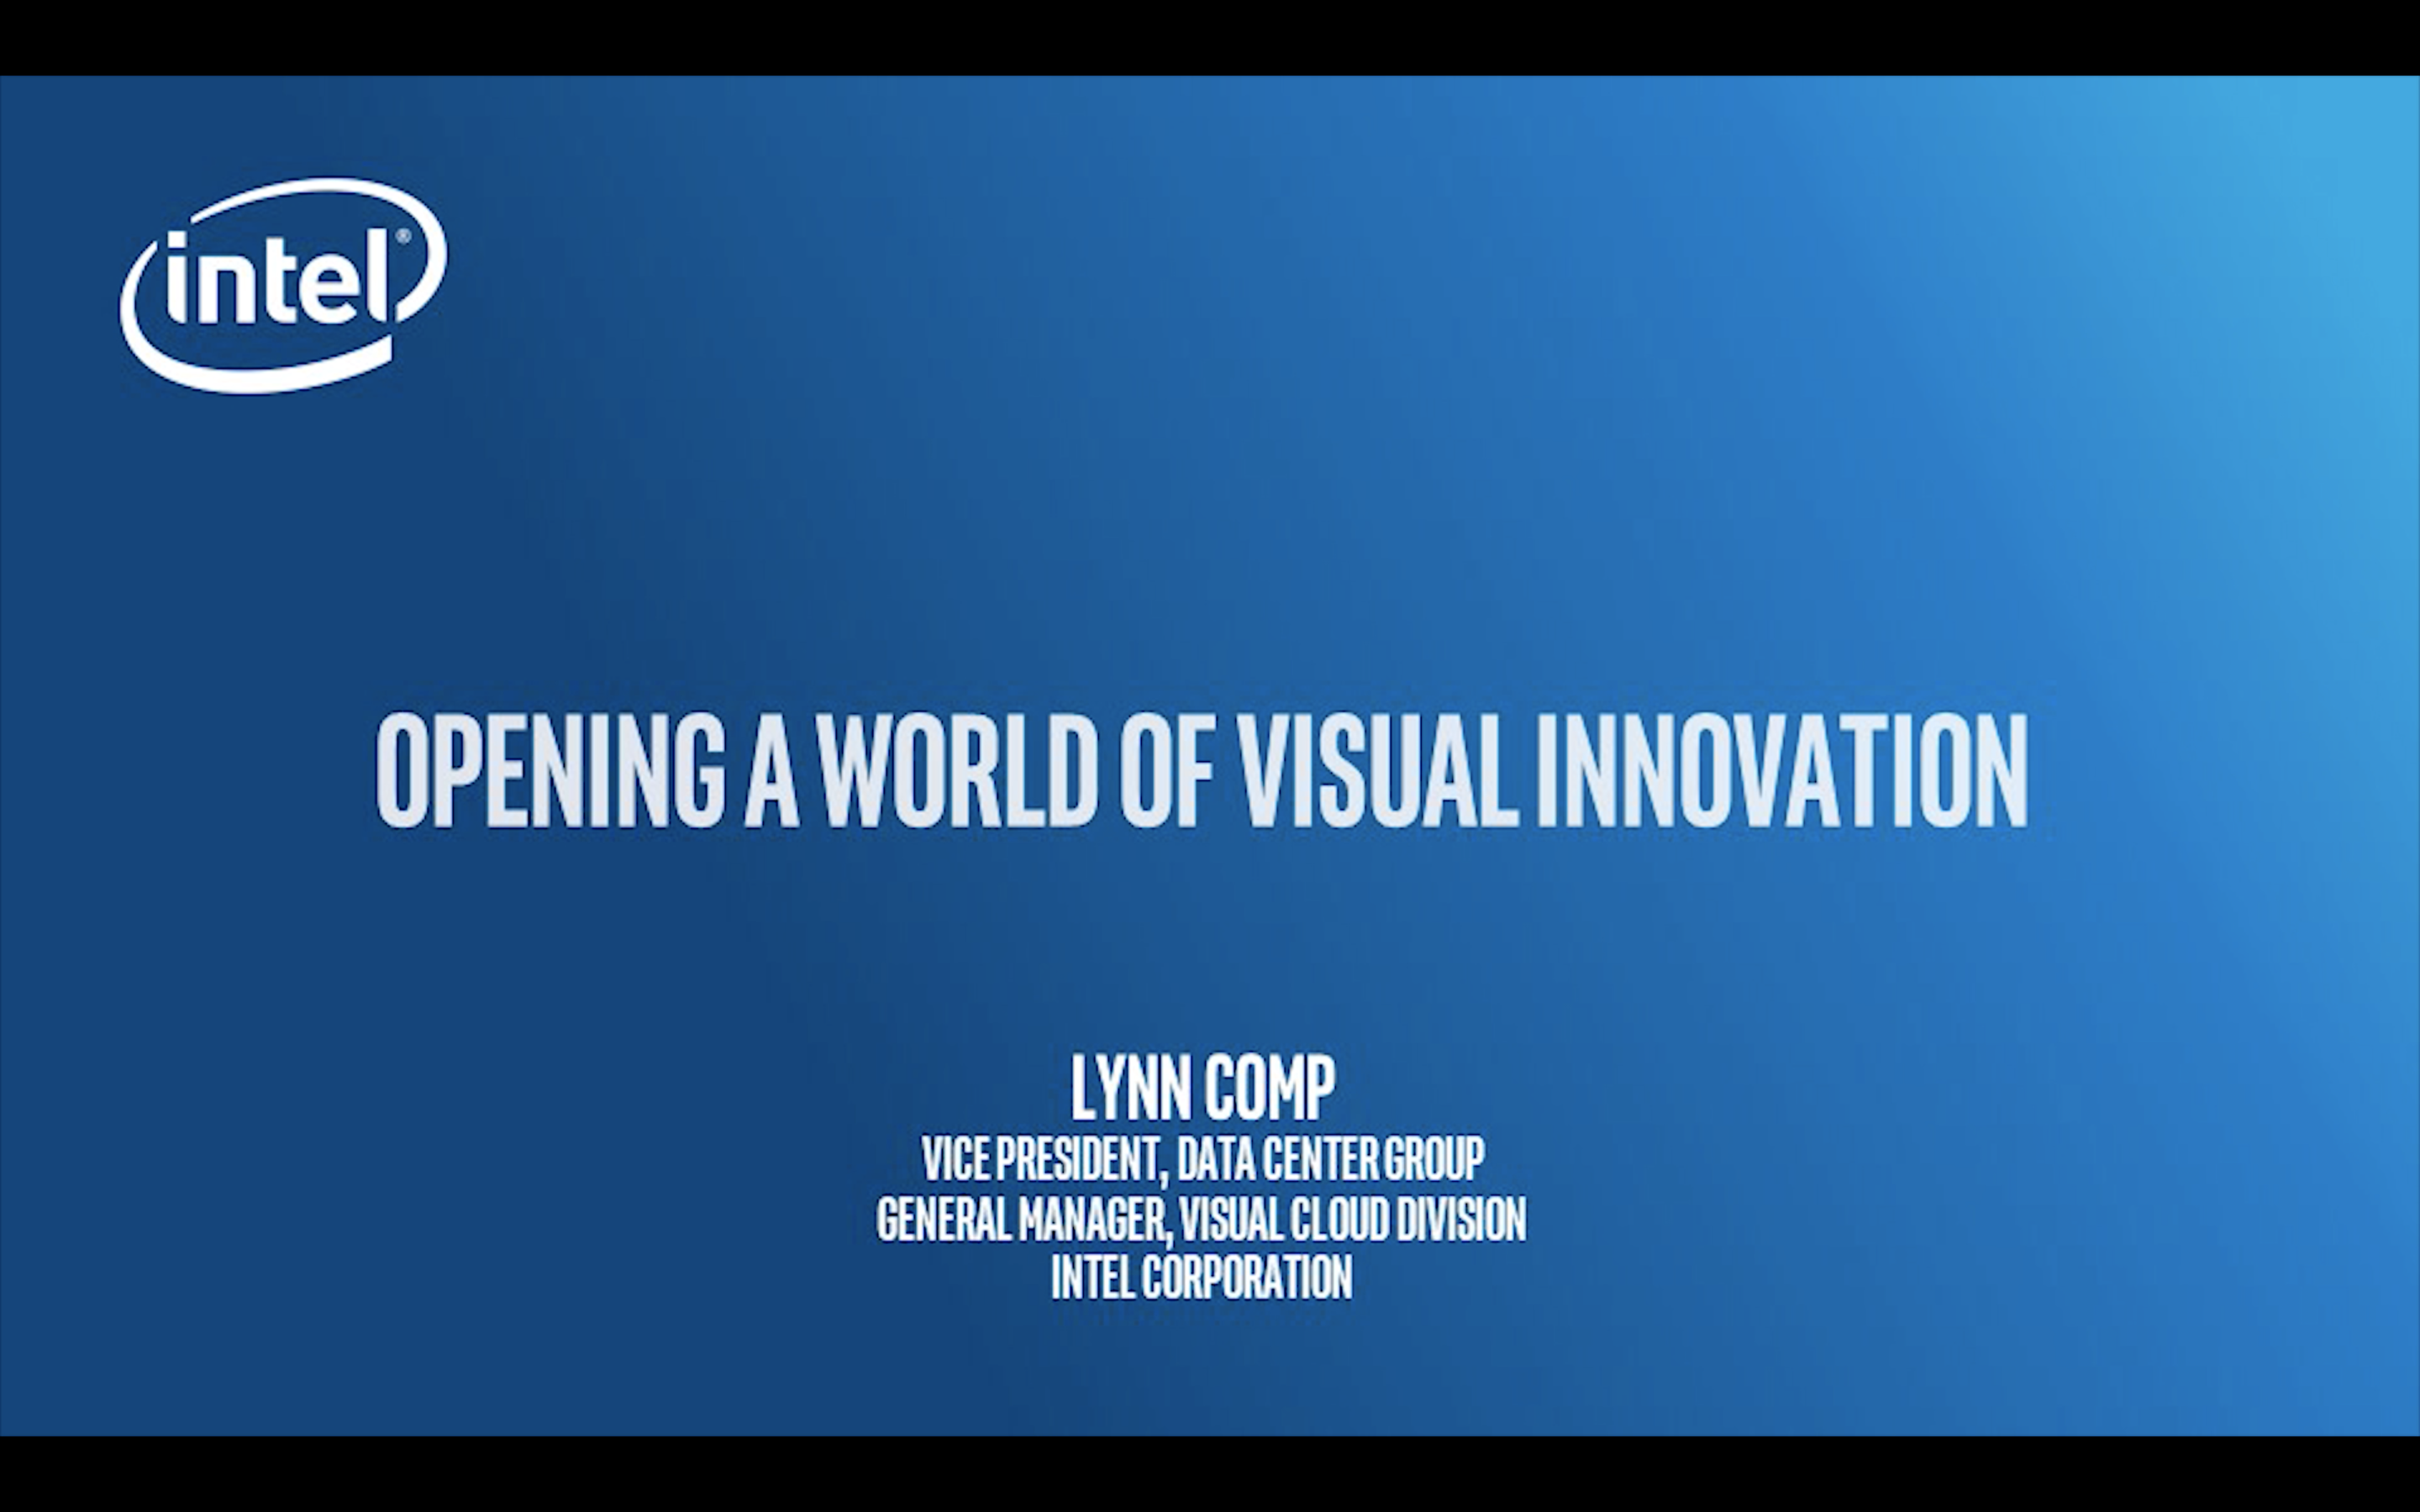 Chapter 1: Opening a World of Visual Innovation